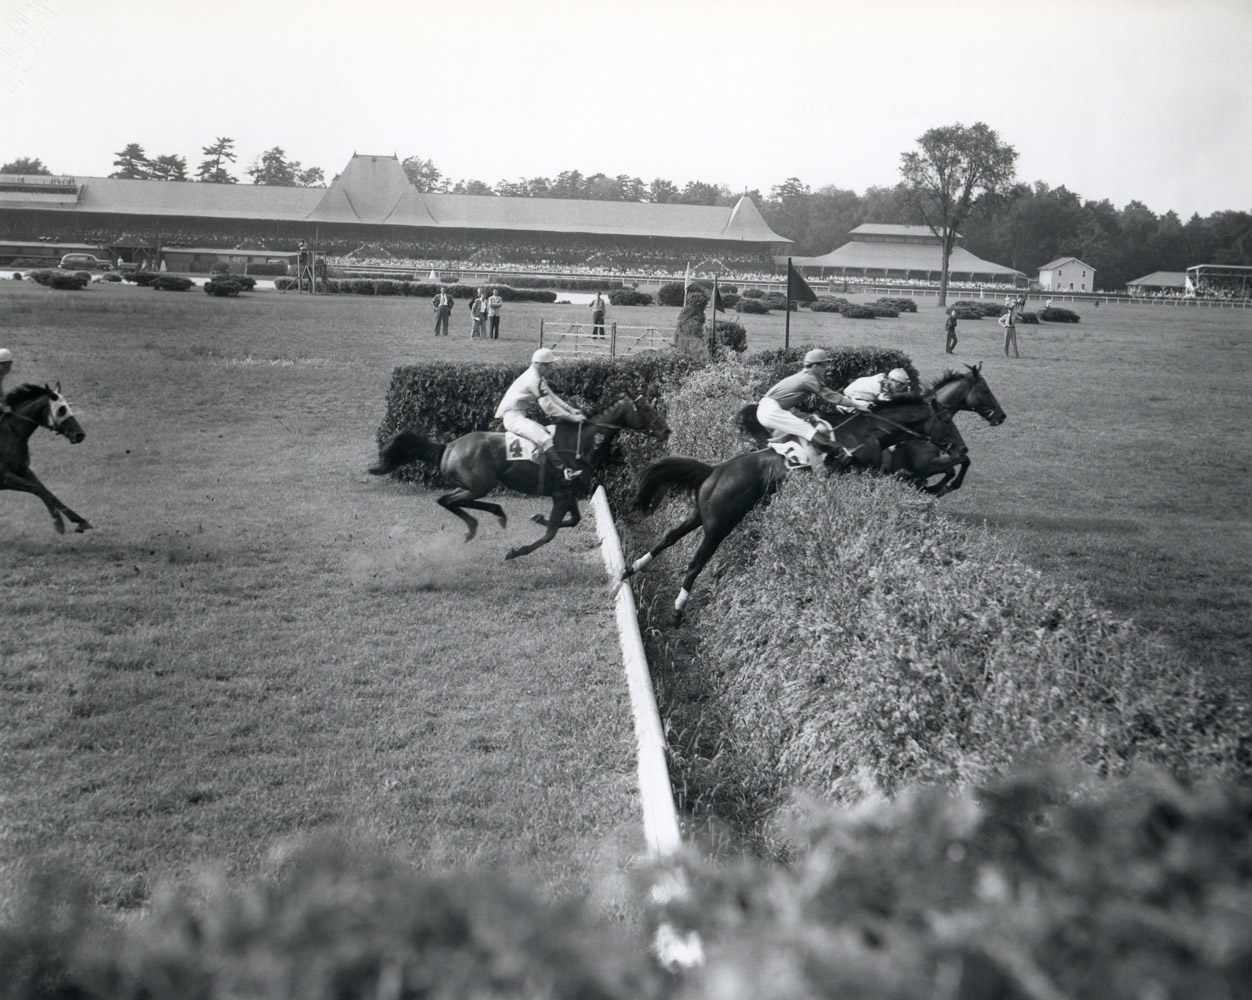 Oedipus competing in the1950 Saratoga Handicap Steeplechase with Thomas Field up (Keeneland Library Morgan Collection/Museum Collection)